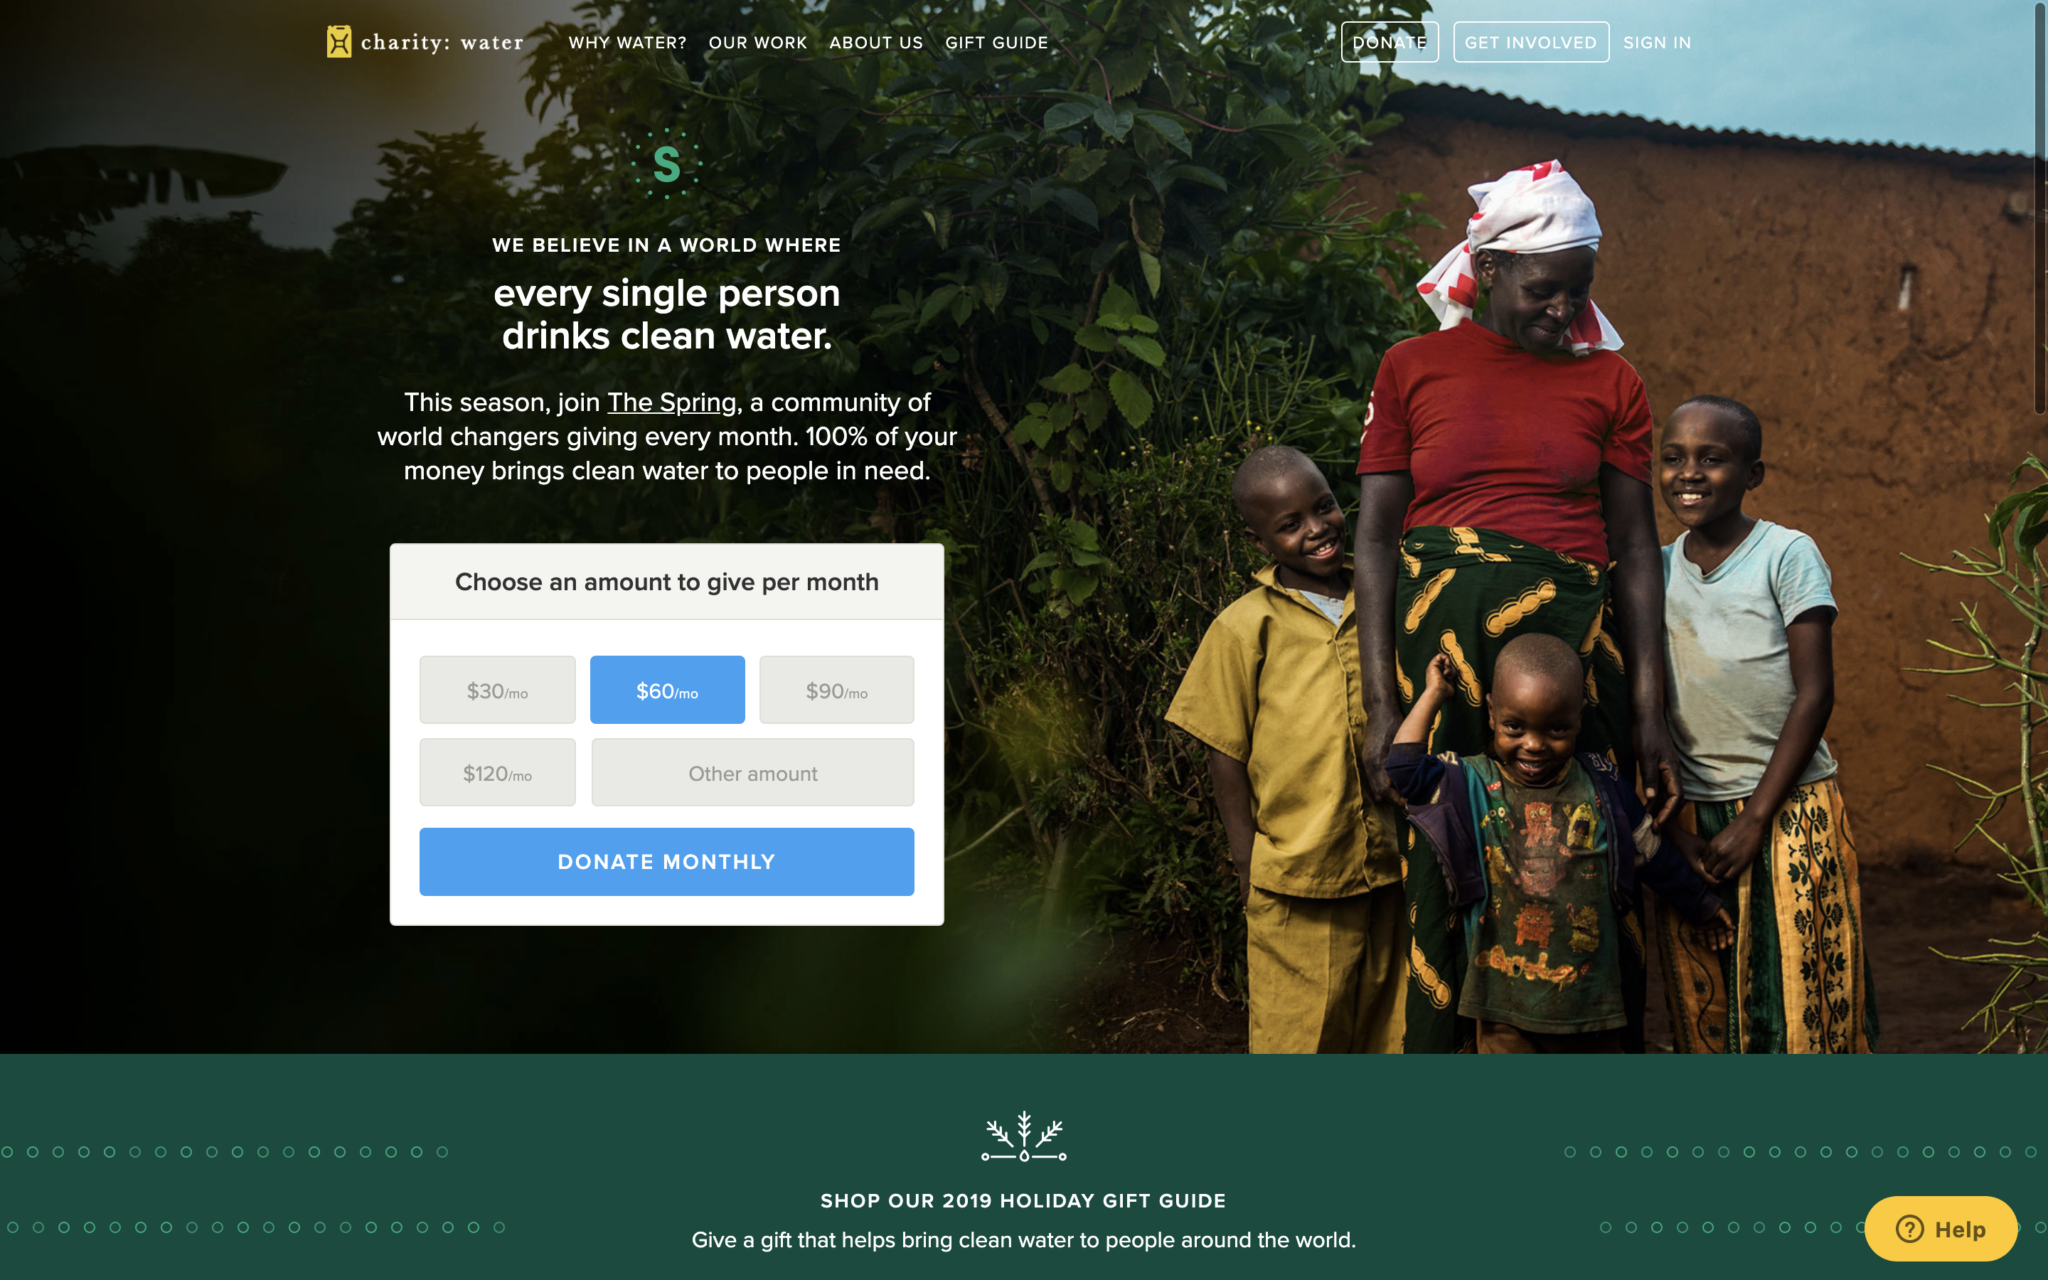 Image of hero section - Charity: water homepage